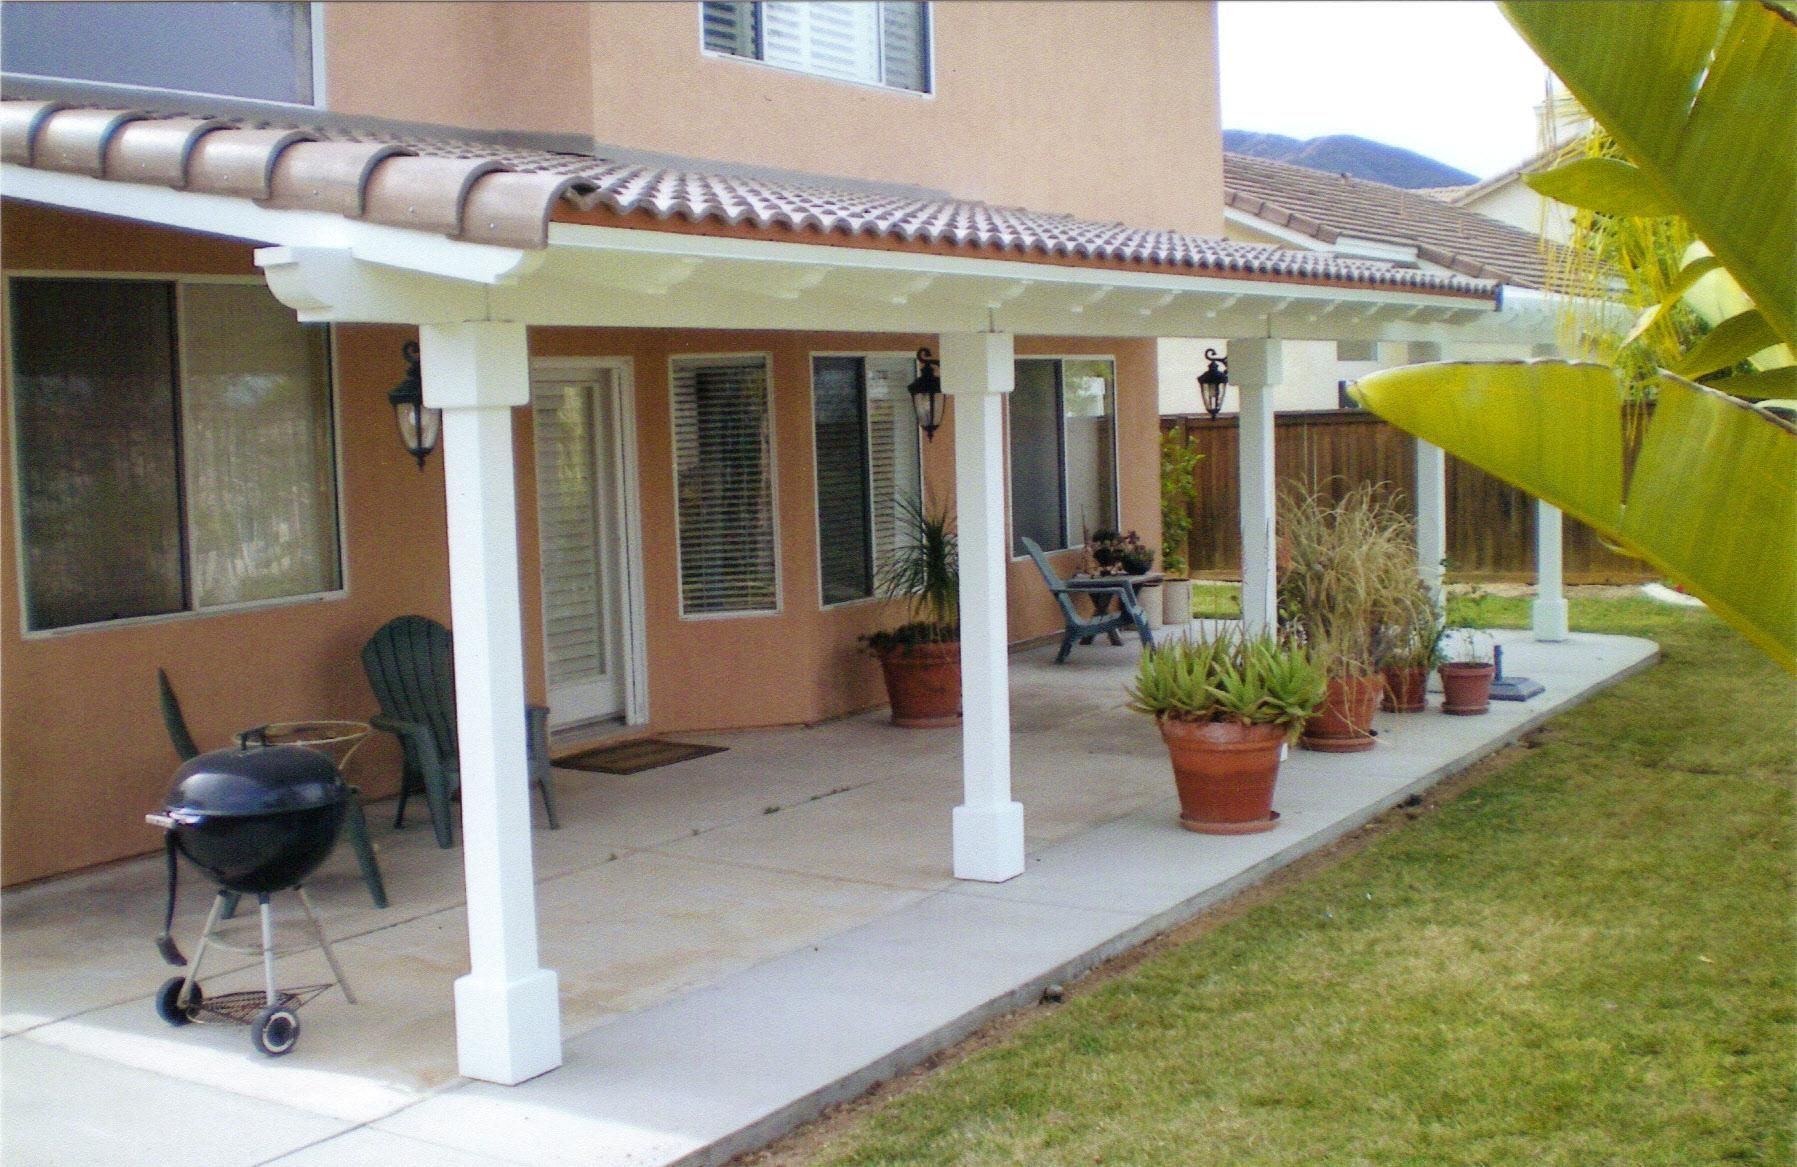 Sculpture Of Backyard Patio Covers From Usefulness To Style Covered Patio Cost Patio Tiles Aluminum Patio Covers